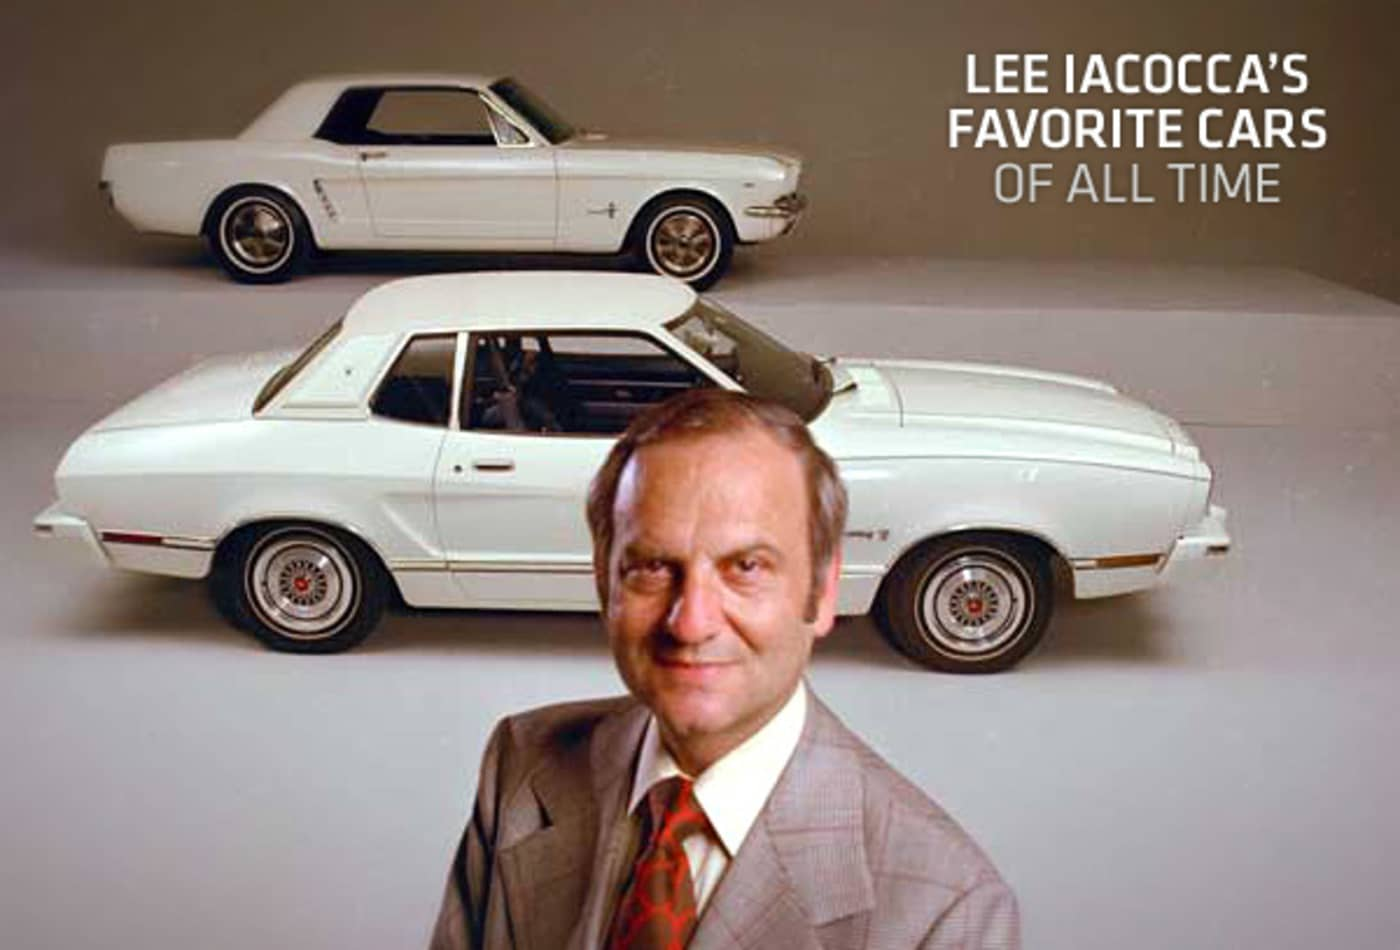 Lee Iacocca Mustang >> Lee Iacocca S Favorite Cars Of All Time